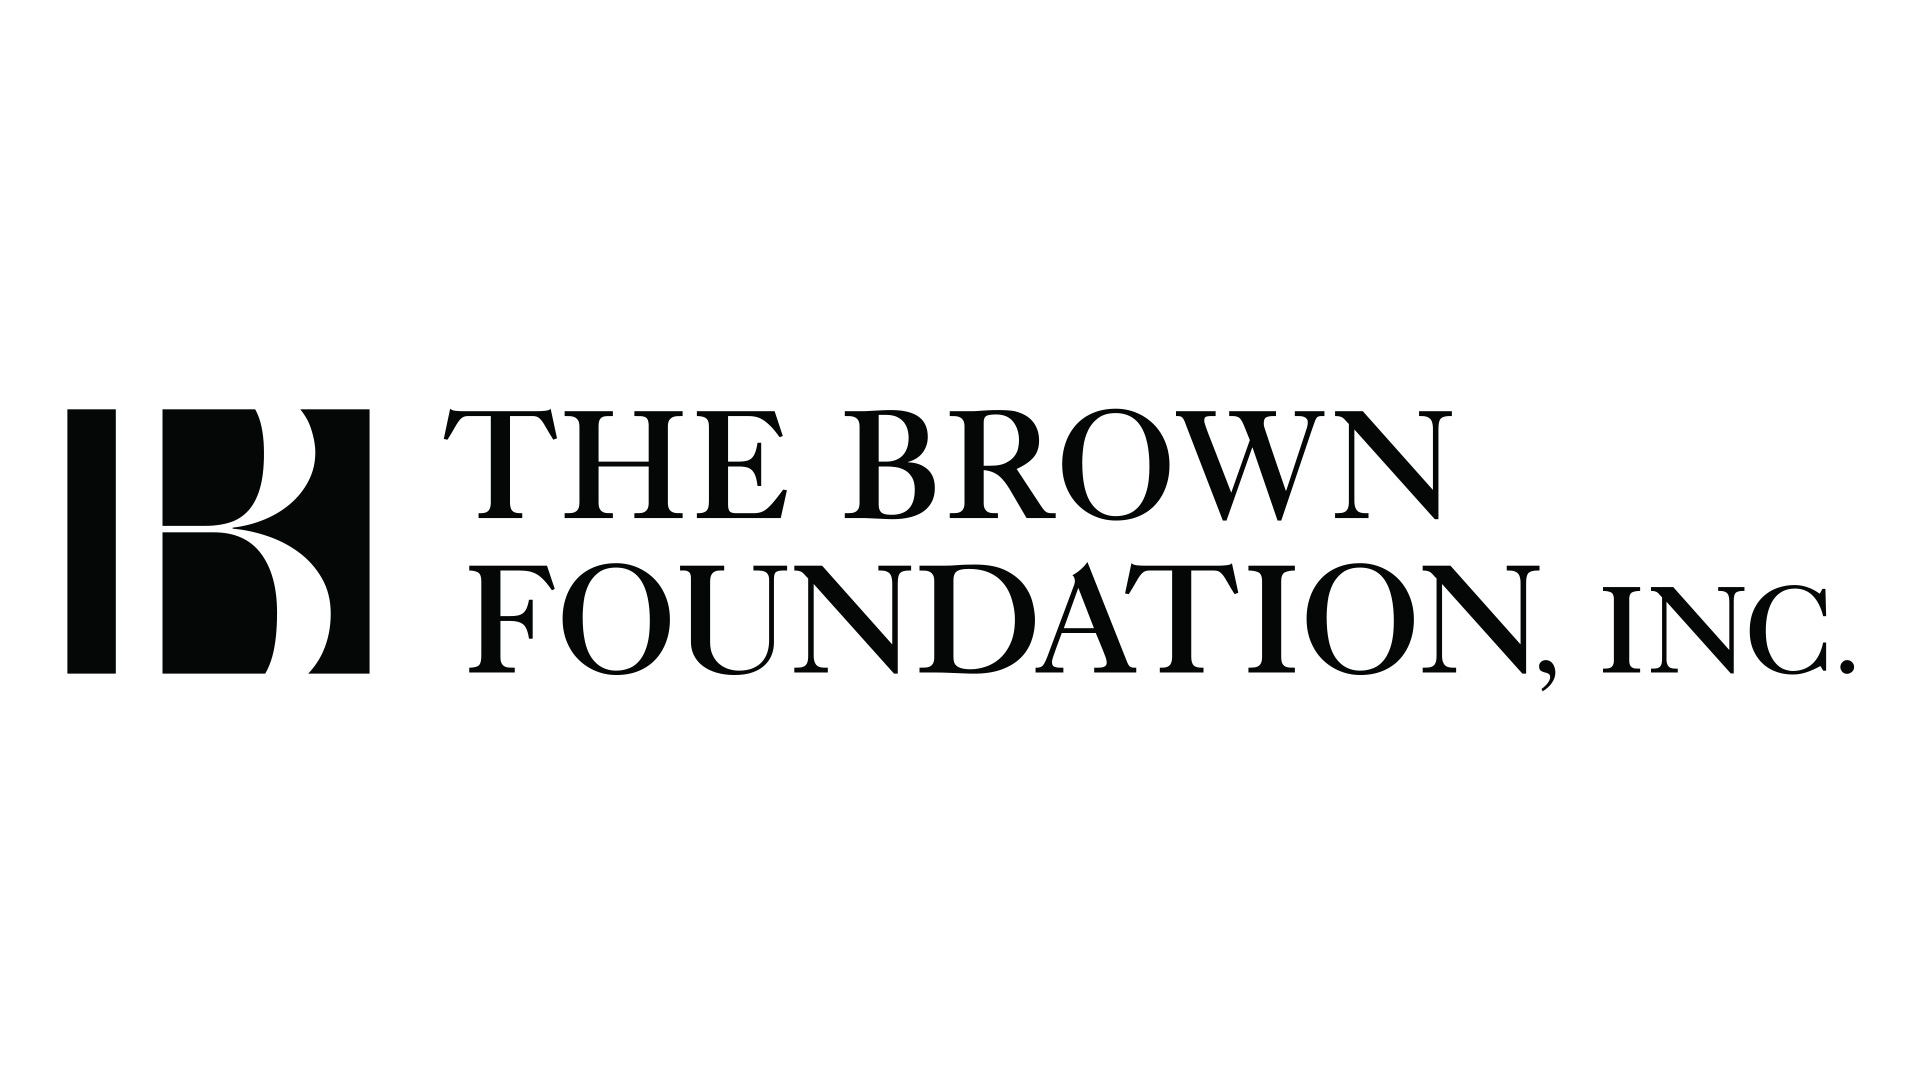 Brown Foundation_logo_1920x1080